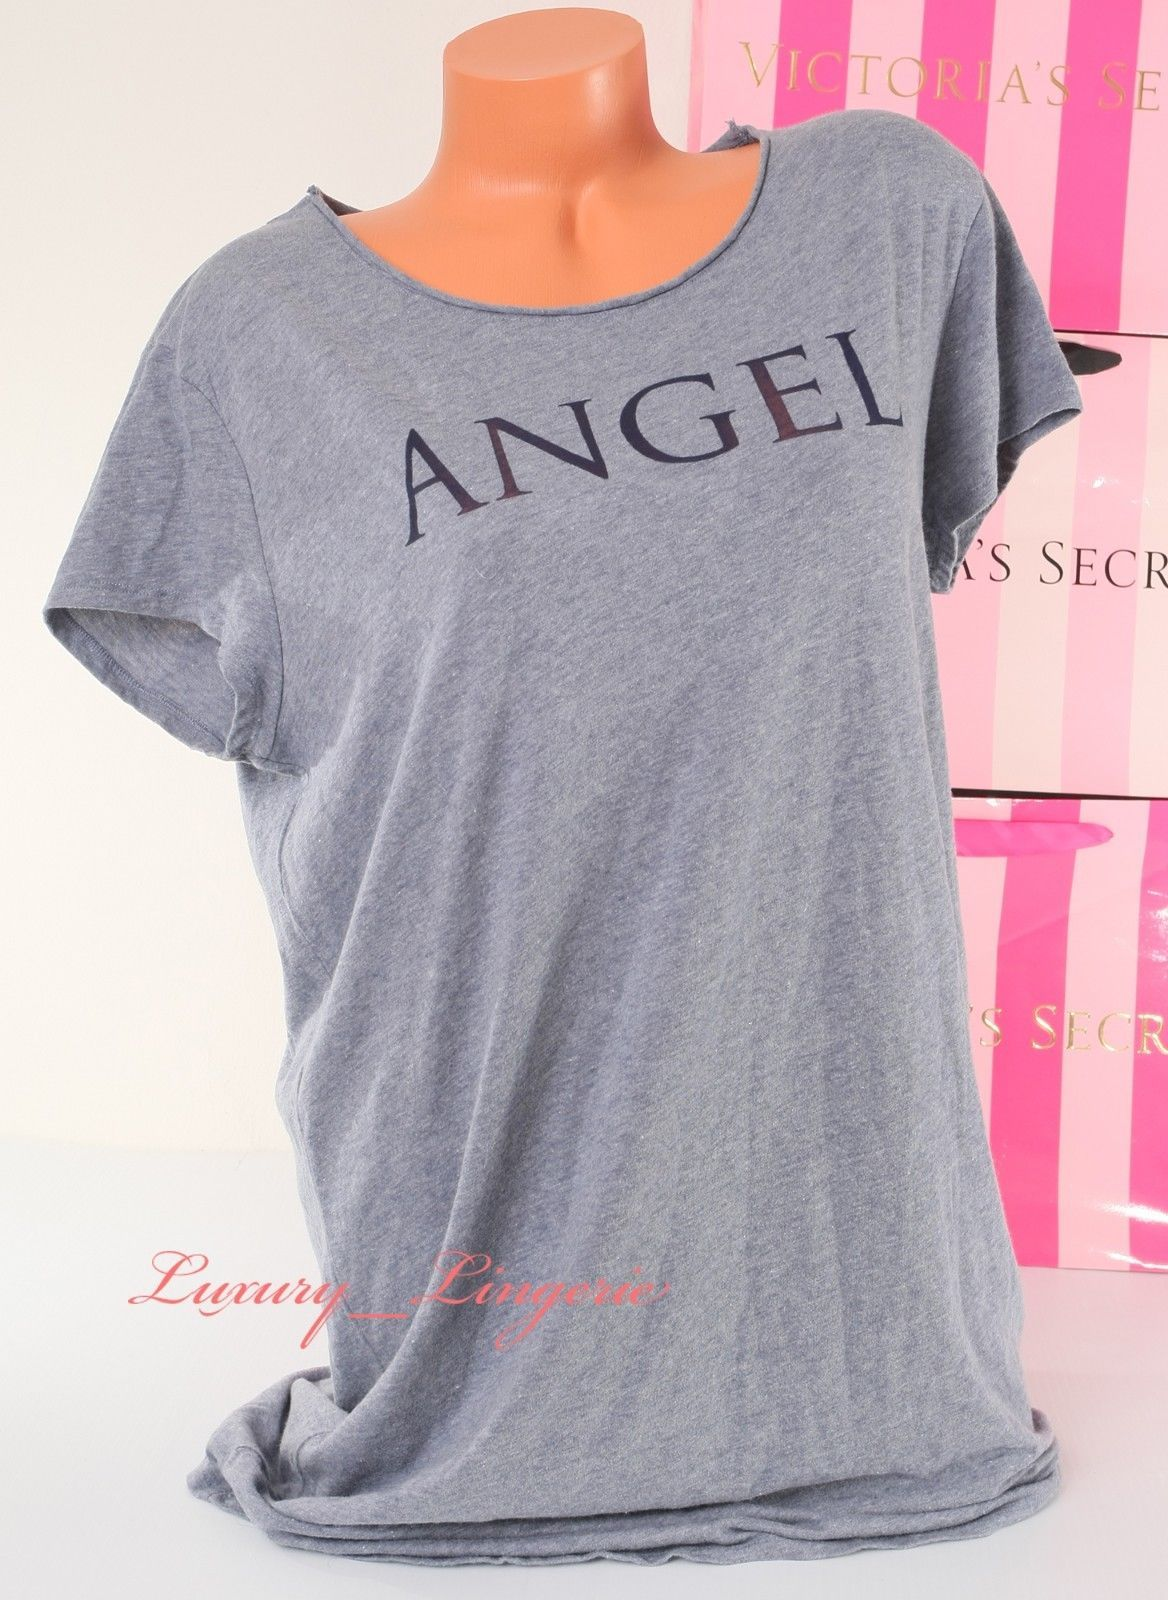 bbdcc1bce89b8 VS Victoria's Secret Sleepshirt Sheer Angel and 50 similar items